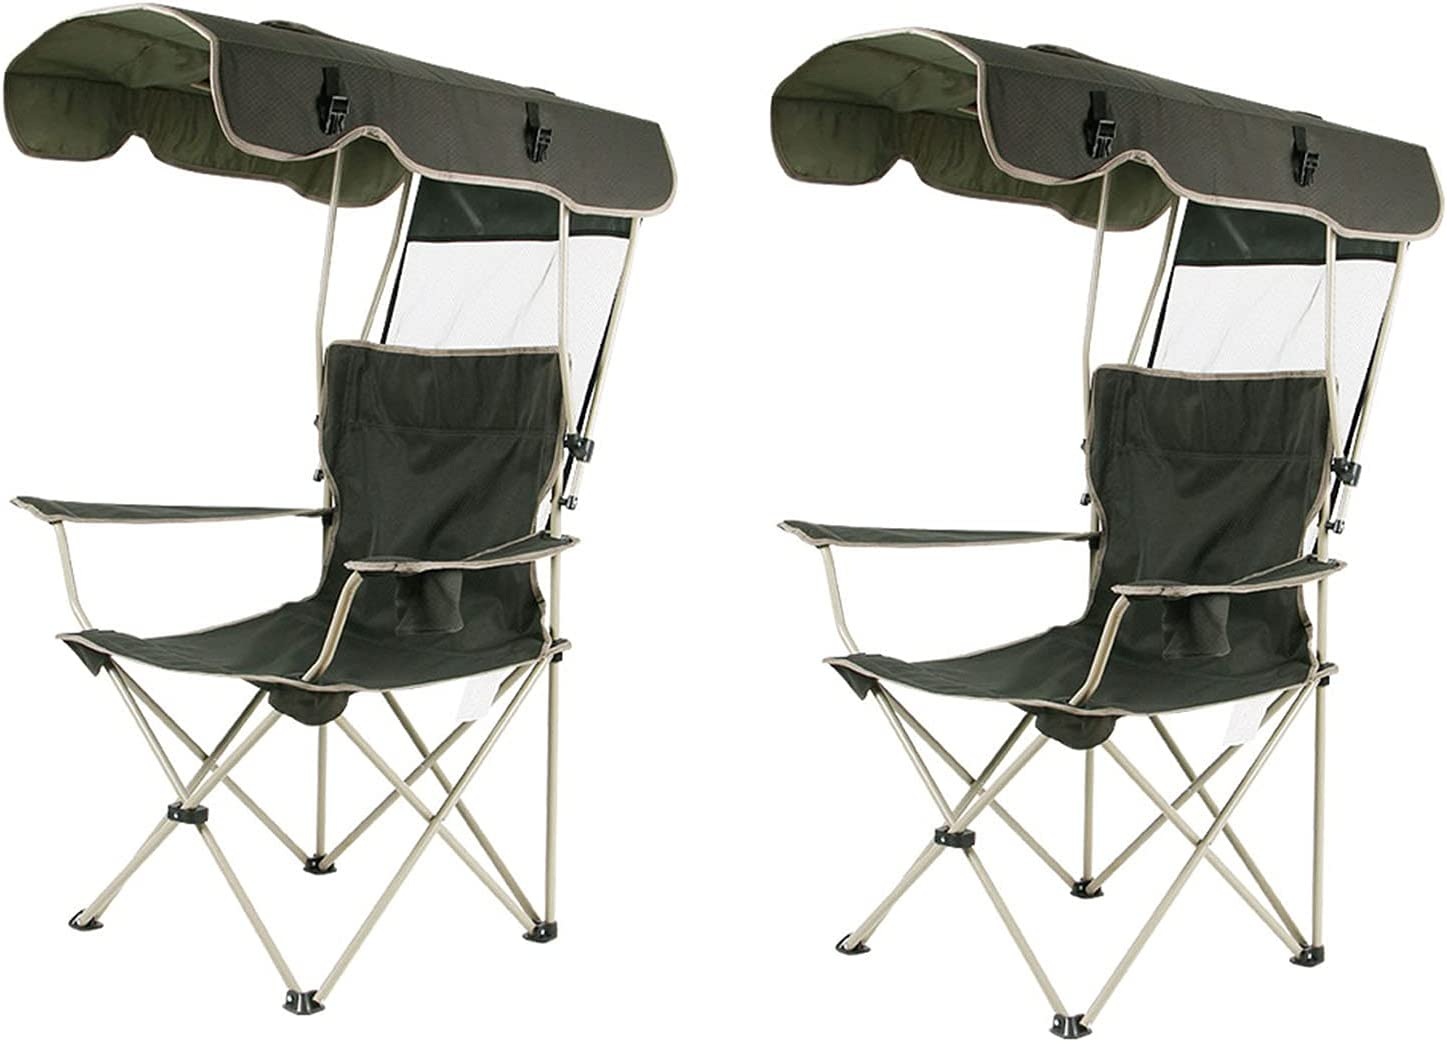 LHQ-HQ Camp Chairs with Shade Ultralight Support Portable Canopy Regular store Nippon regular agency